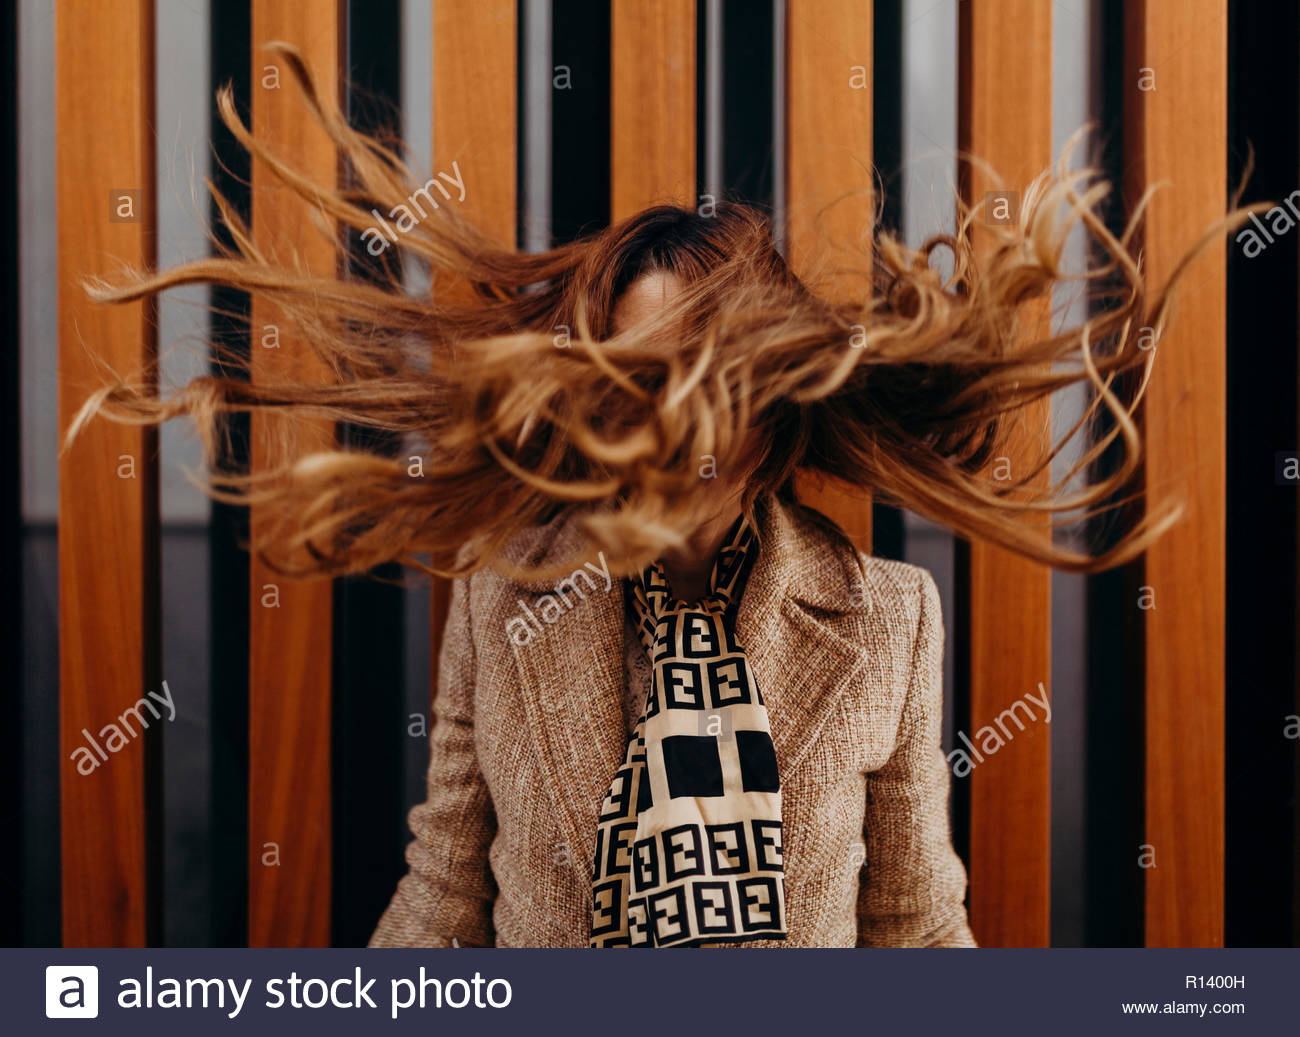 Portrait of a woman tossing her long hair - Stock Image